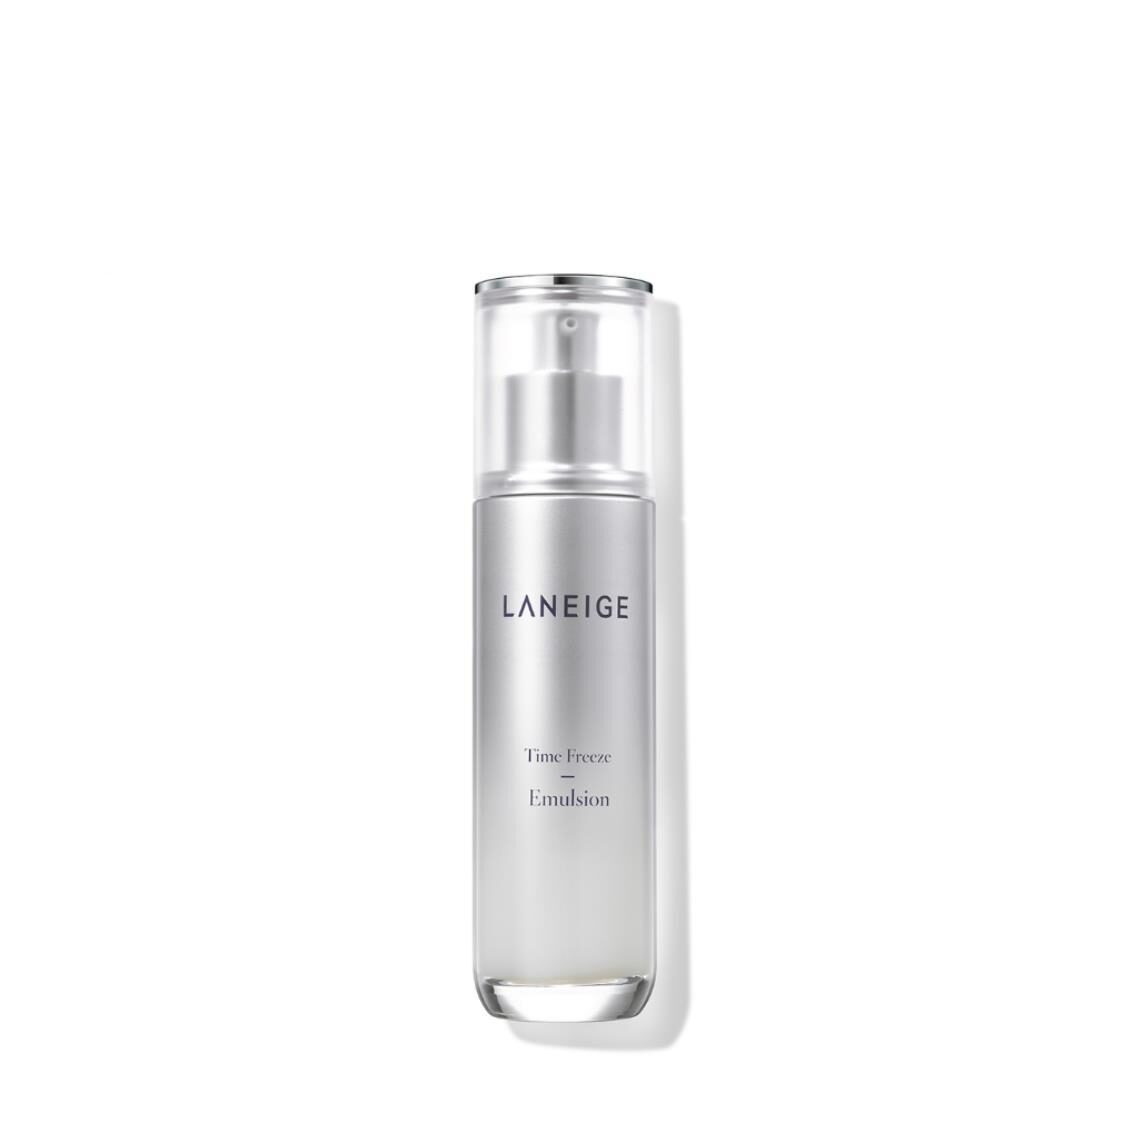 Laneige Time Freeze Emulsion